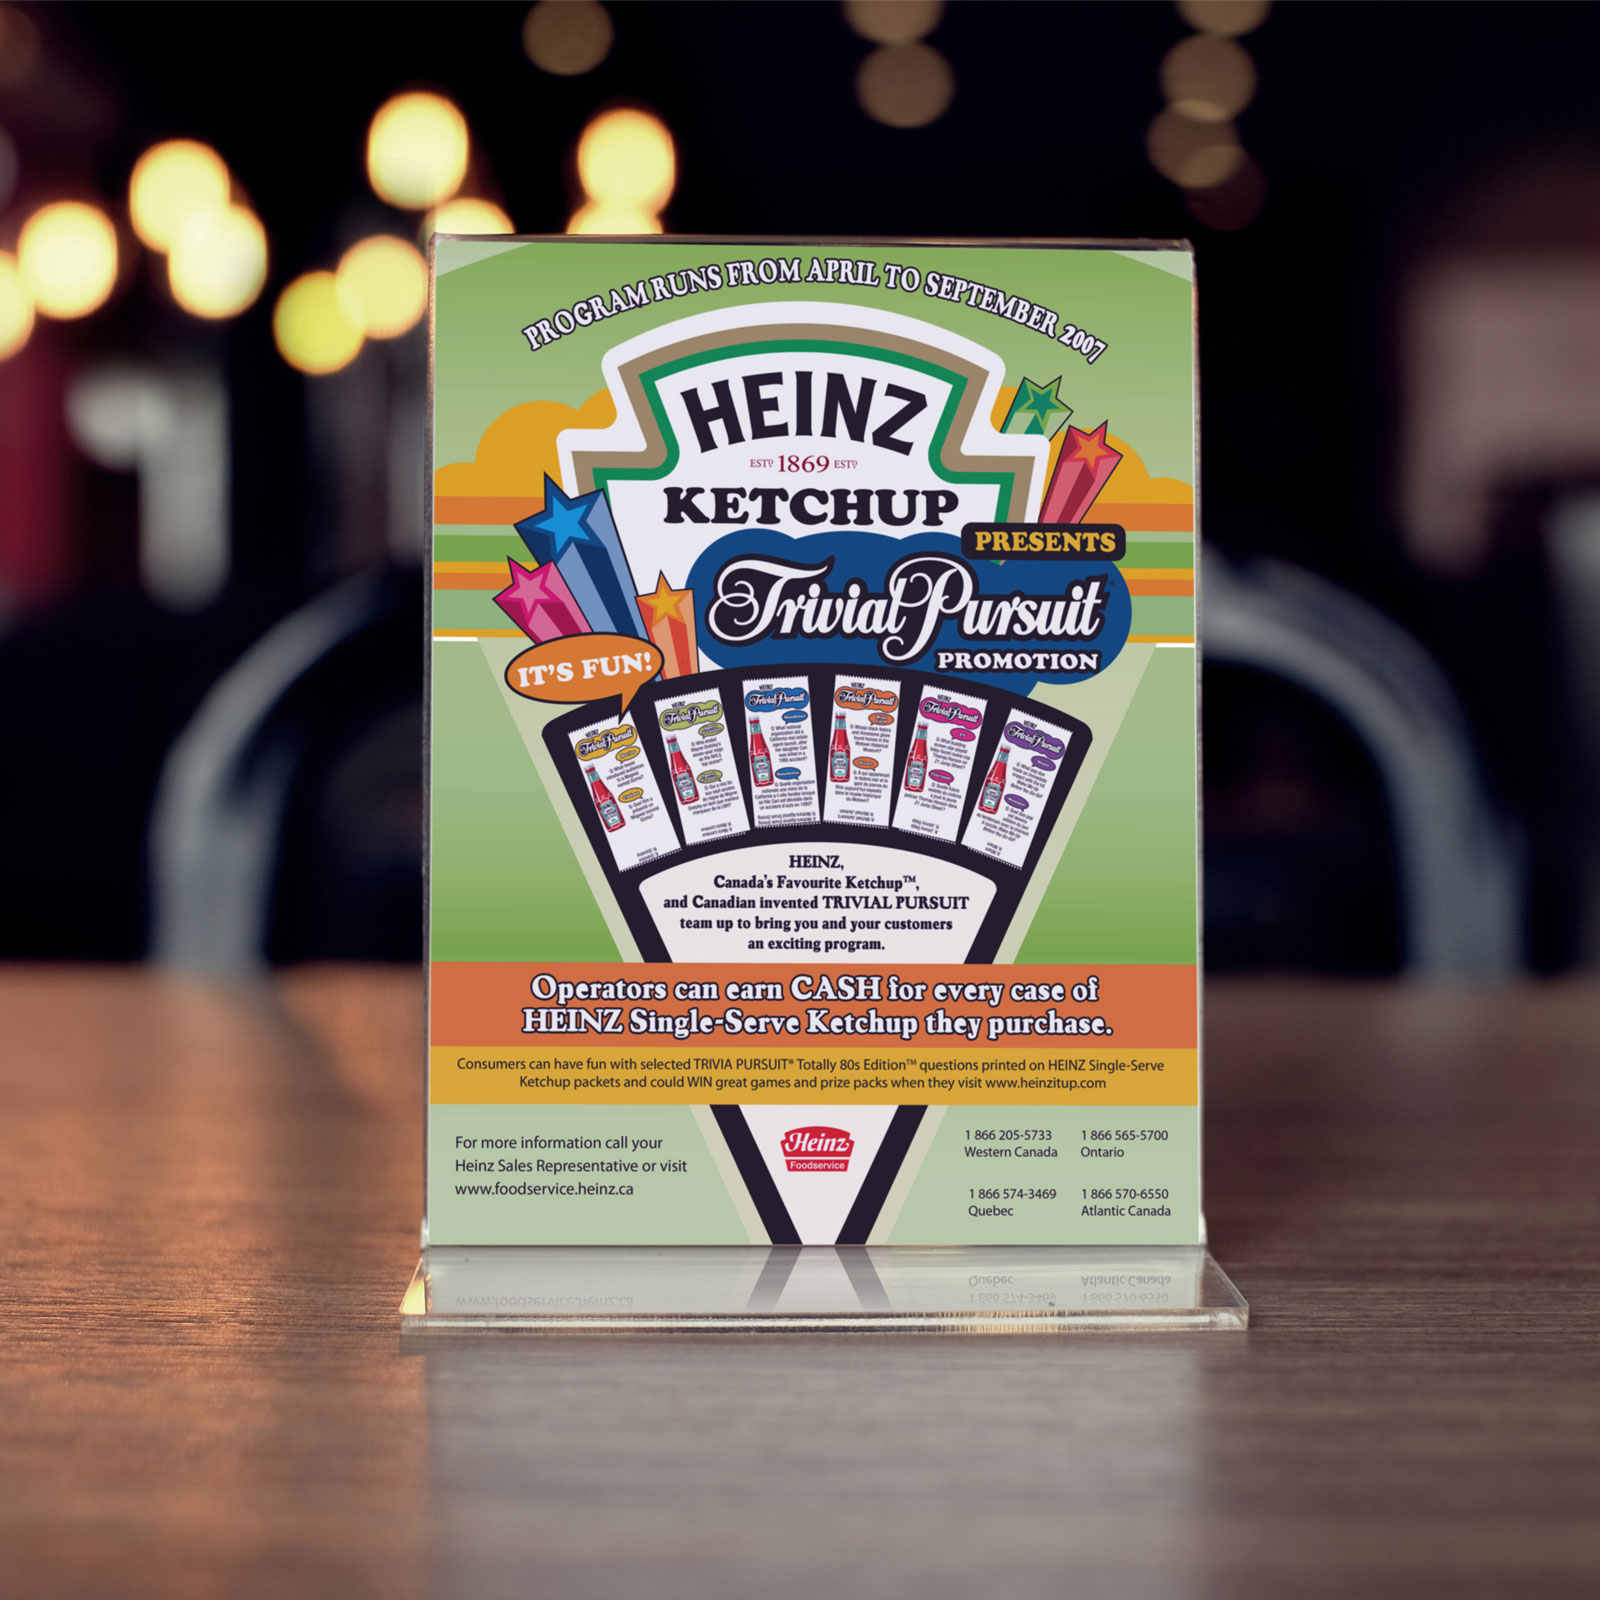 Direct To Consumer Campaign – Heinz Ketchup